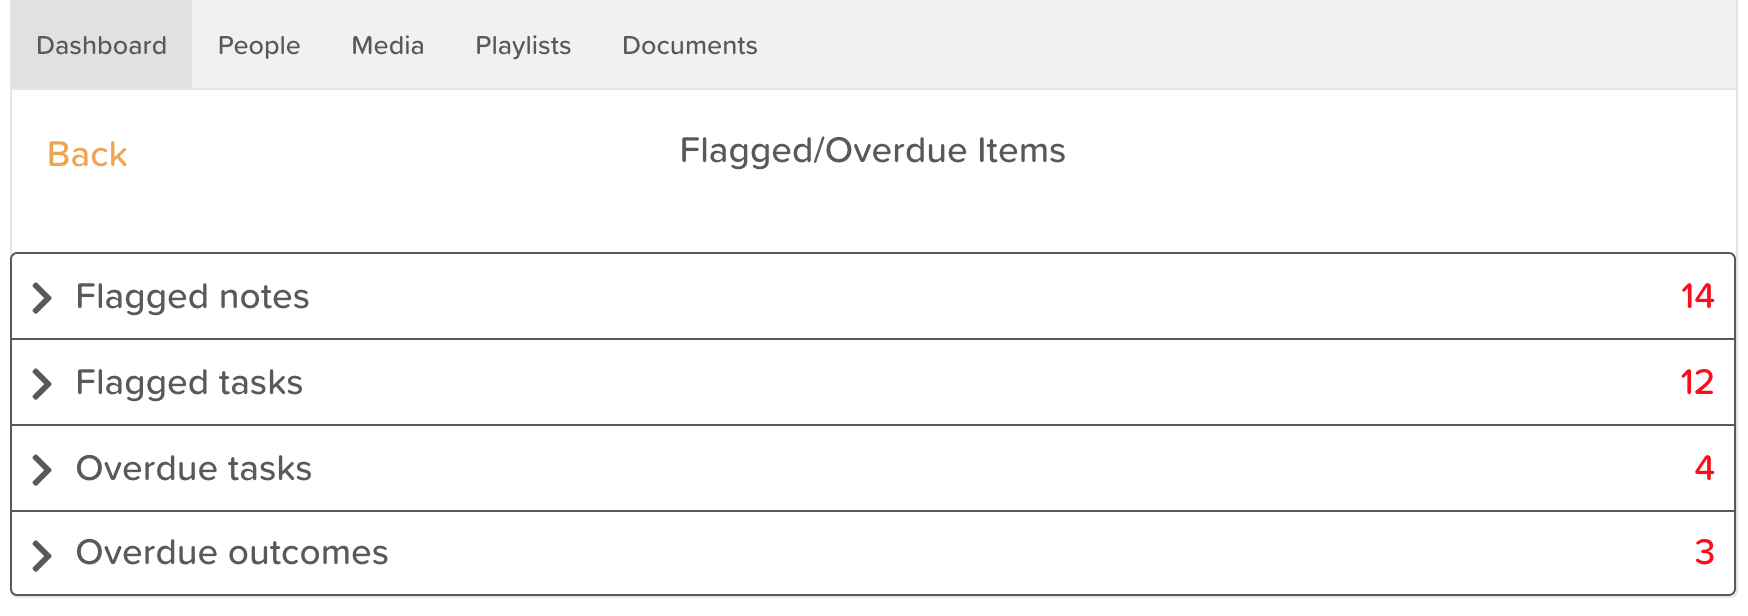 Flagged / Overdue